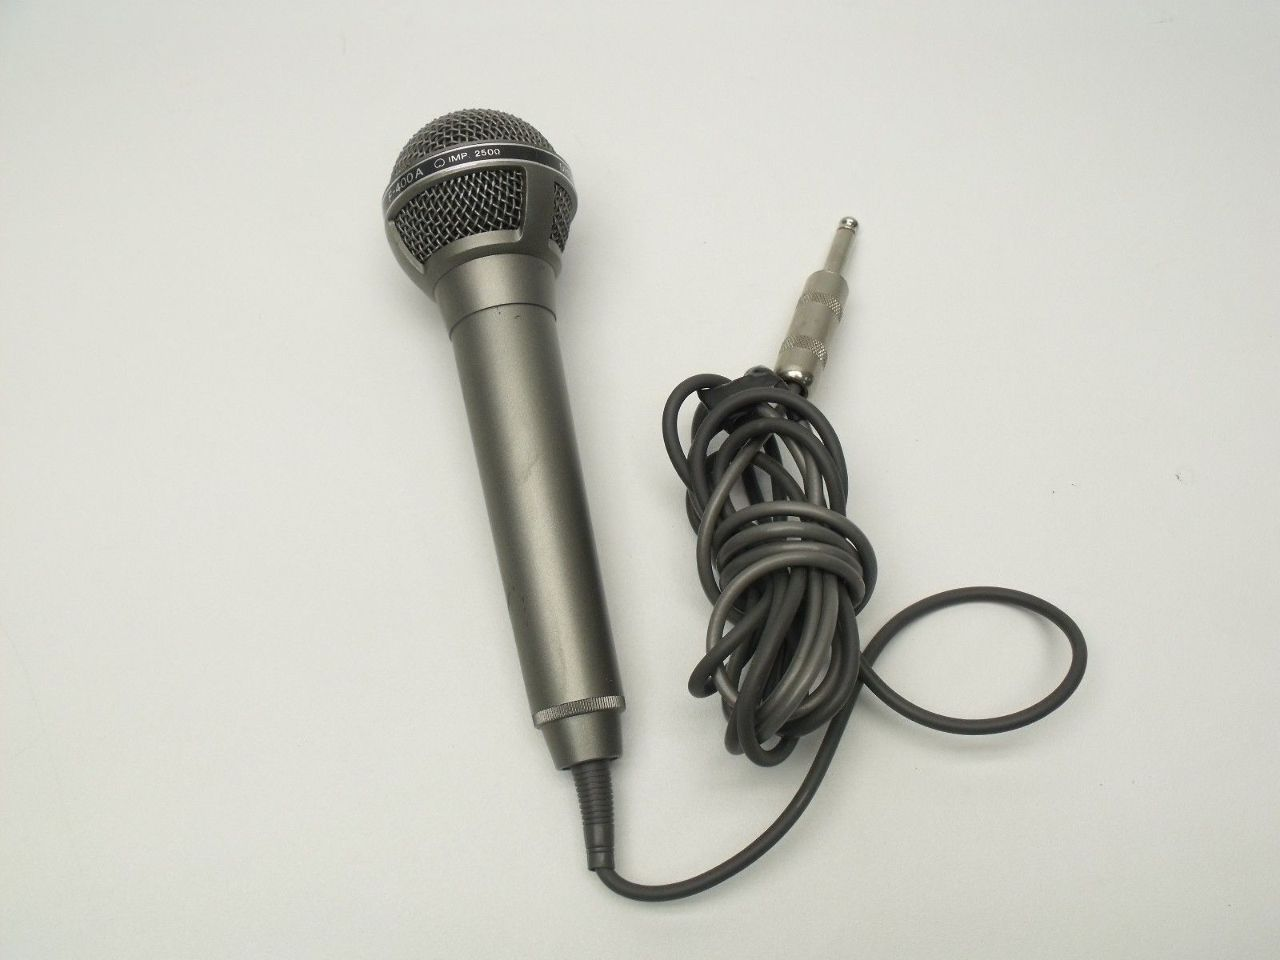 sony f 400a dynamic range microphone ebay. Black Bedroom Furniture Sets. Home Design Ideas